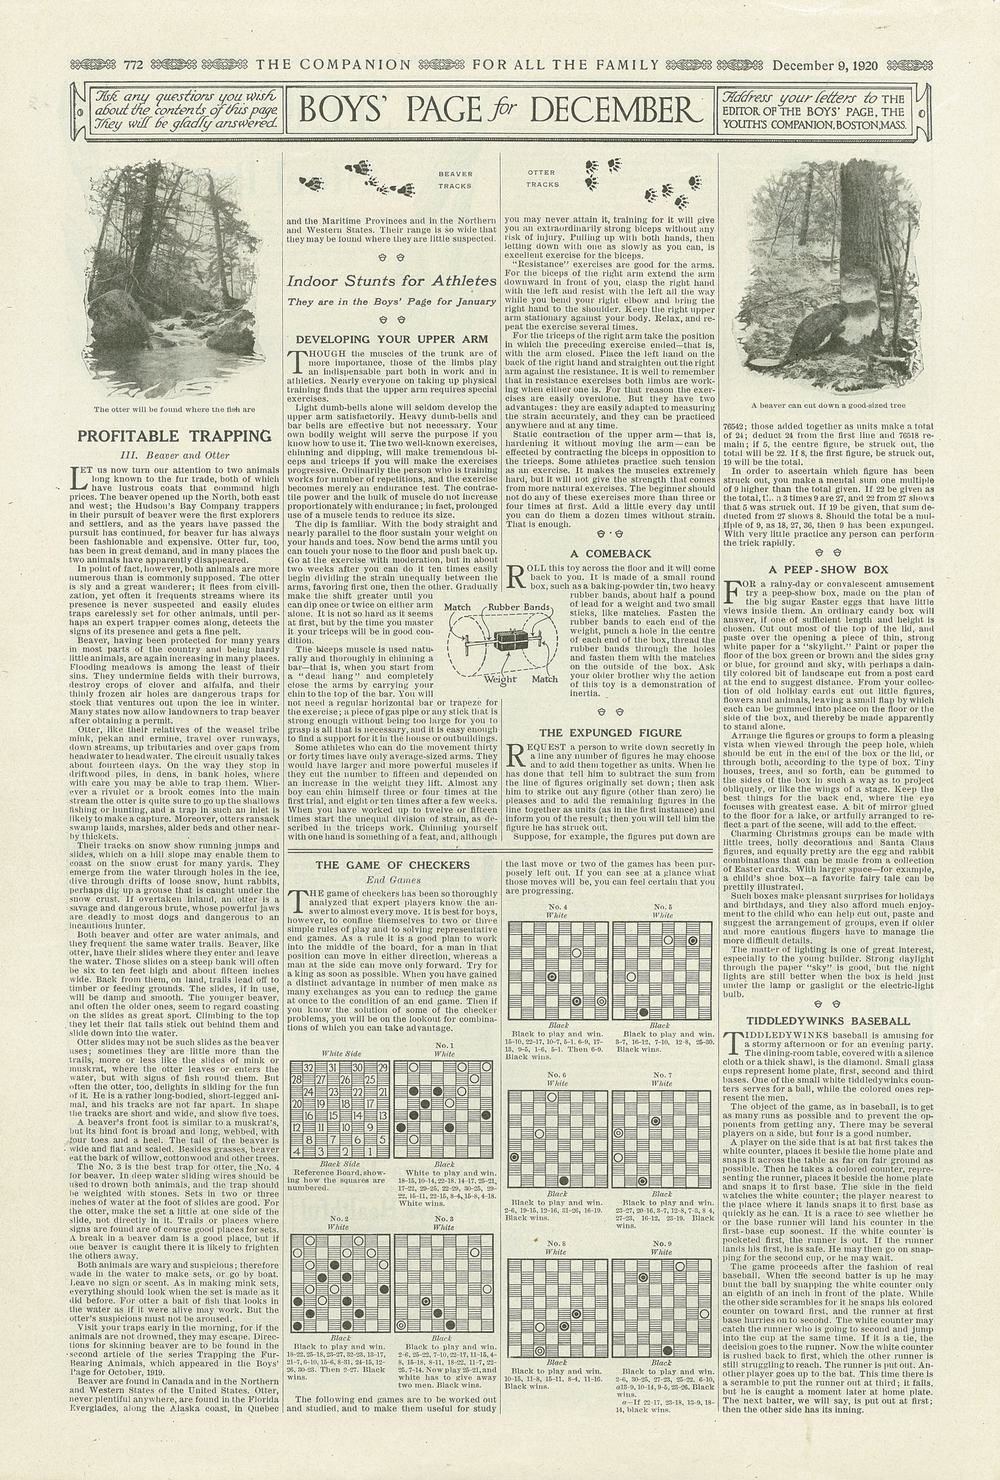 The Youth's Companion - December 9th, 1920 - Vol. 94 - No. 50